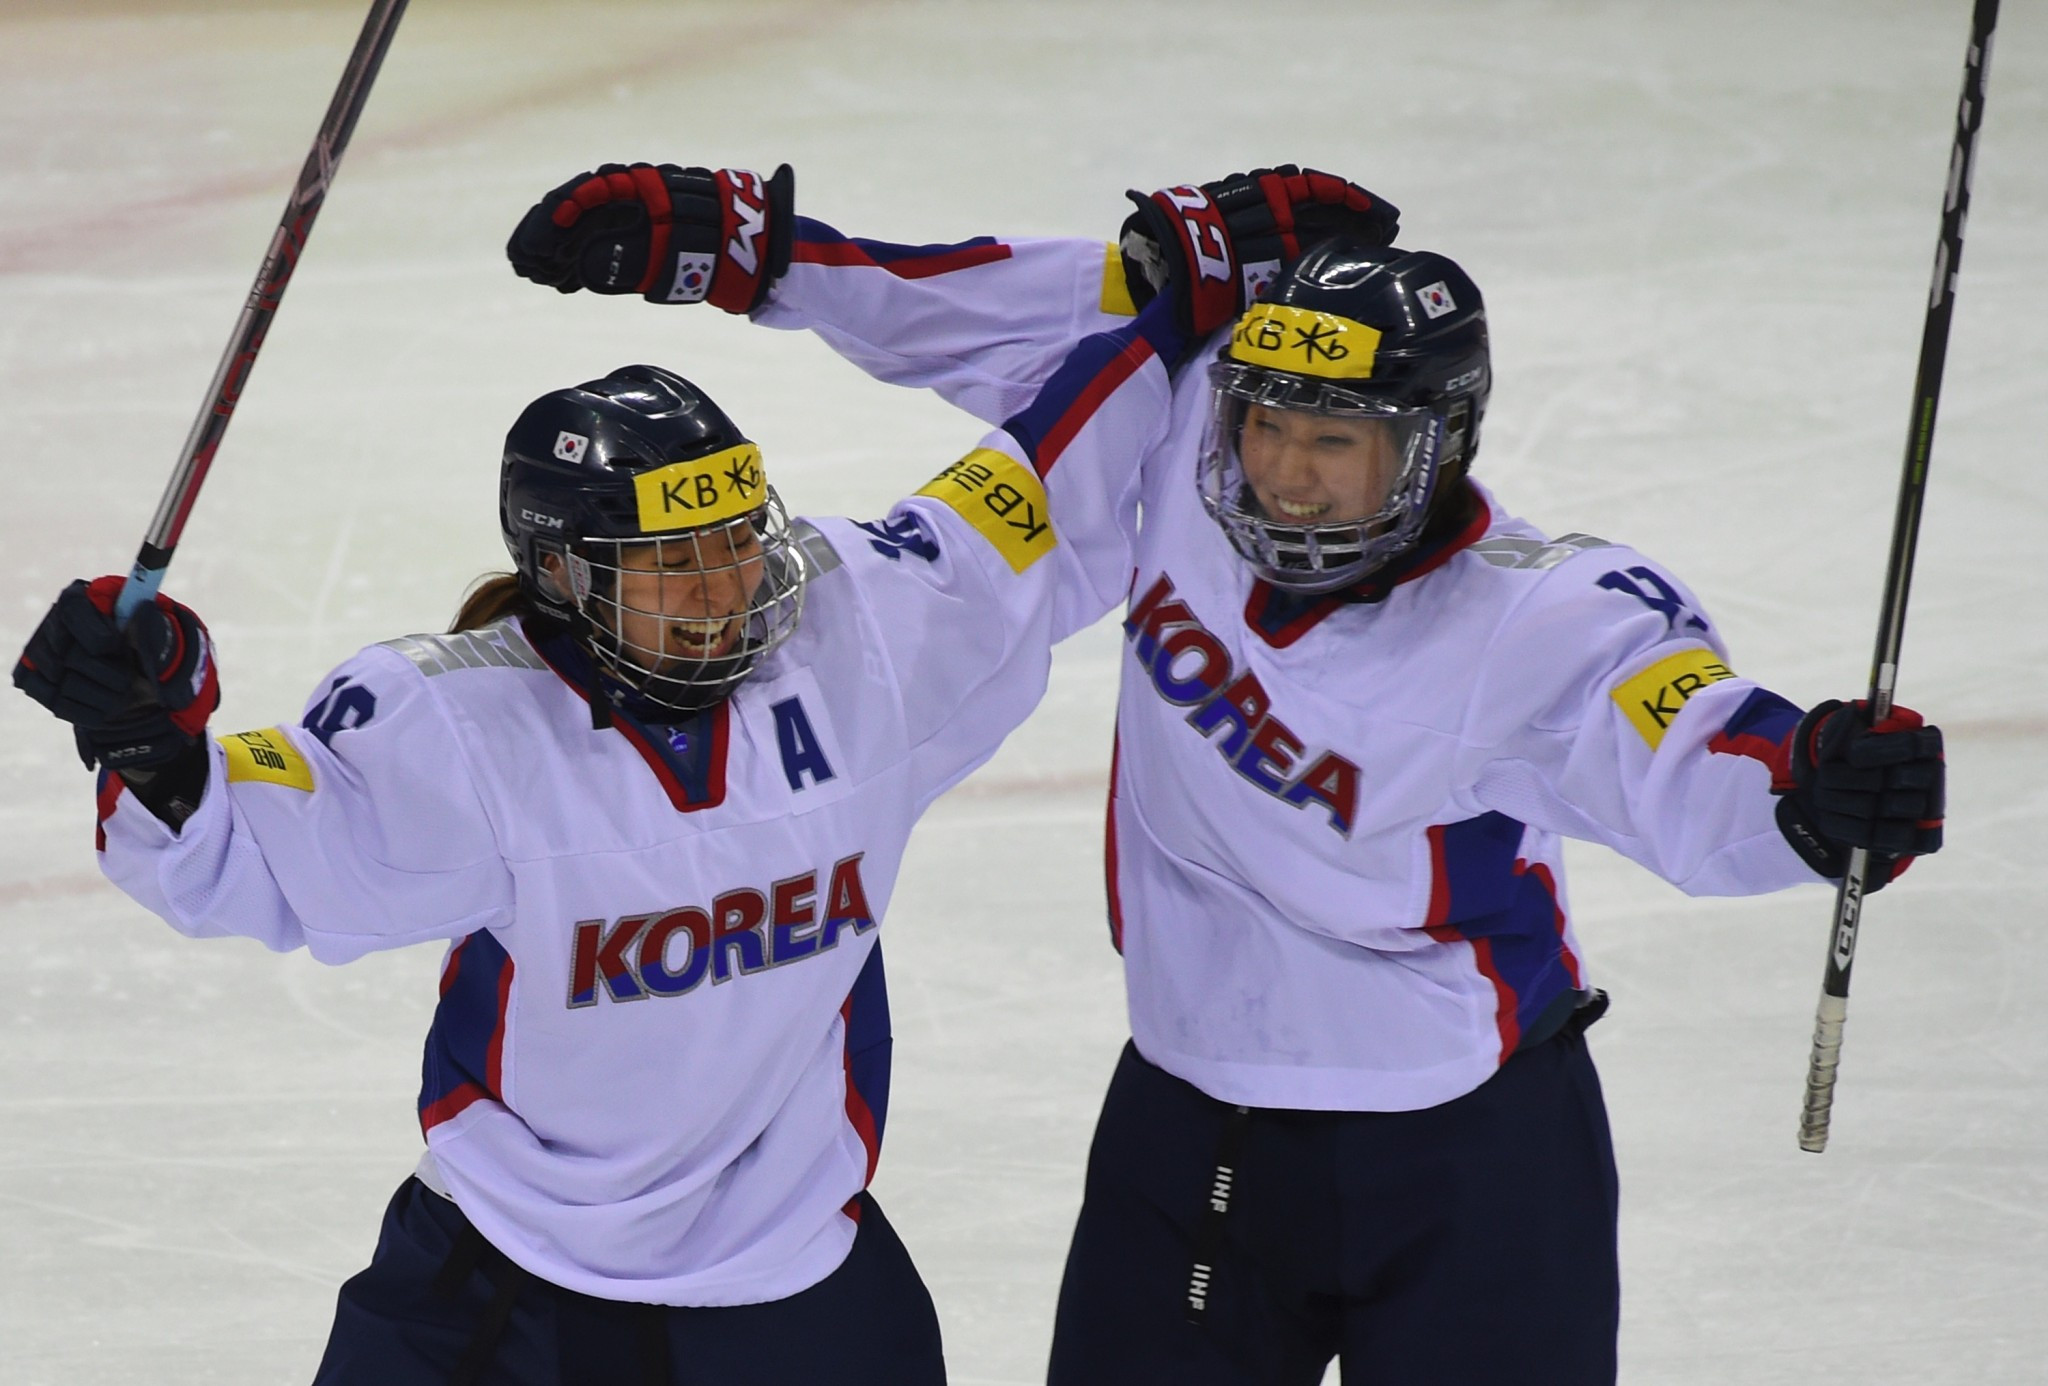 South Korean women's ice hockey team to face America college teams to prepare for Pyeongchang